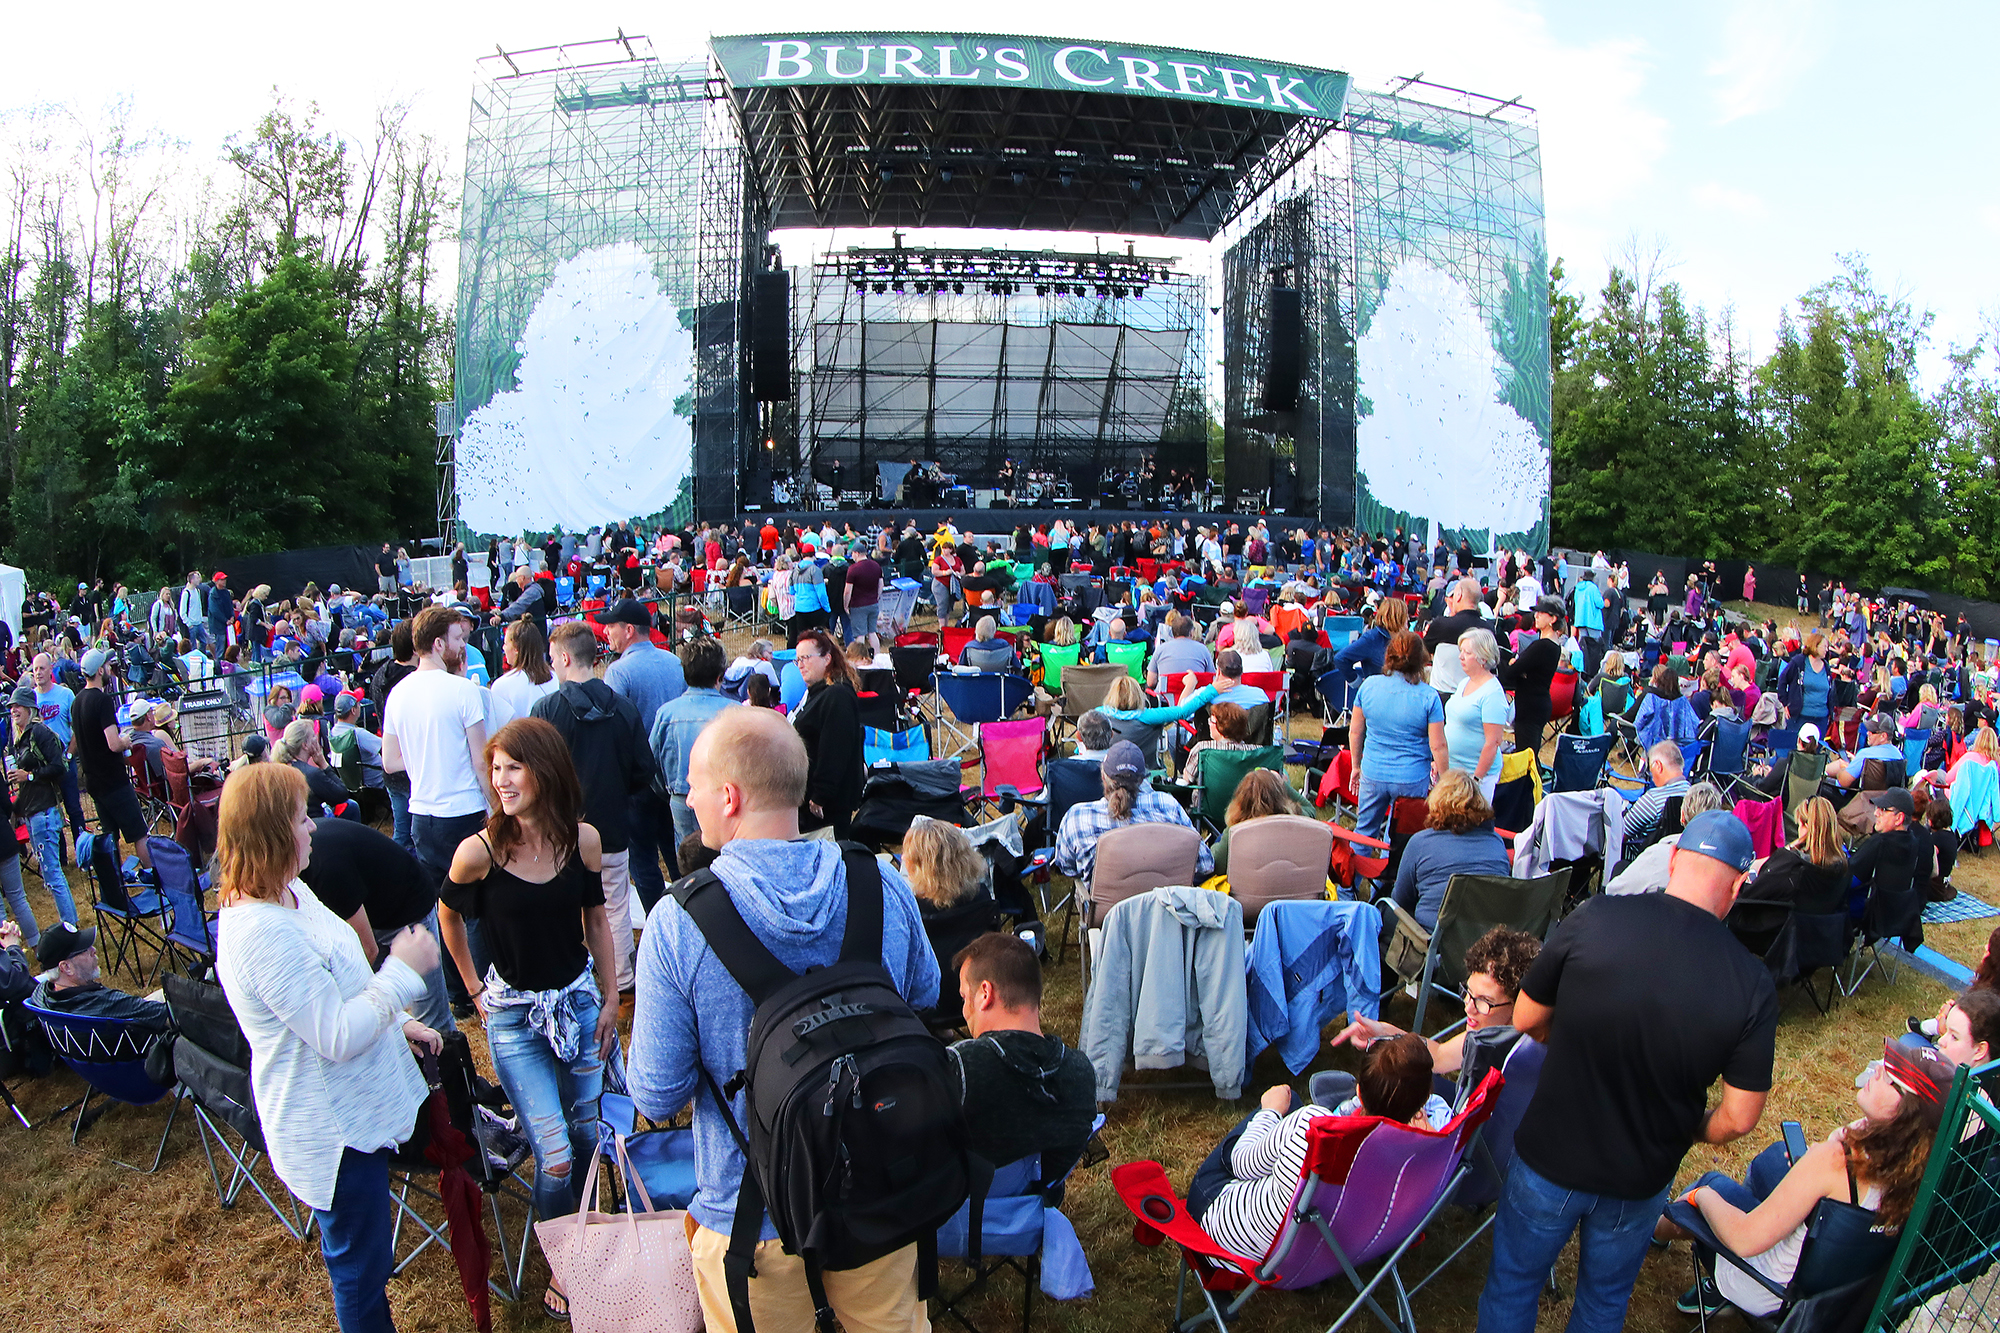 Bylaw extension allows for another season of concerts at Burl's